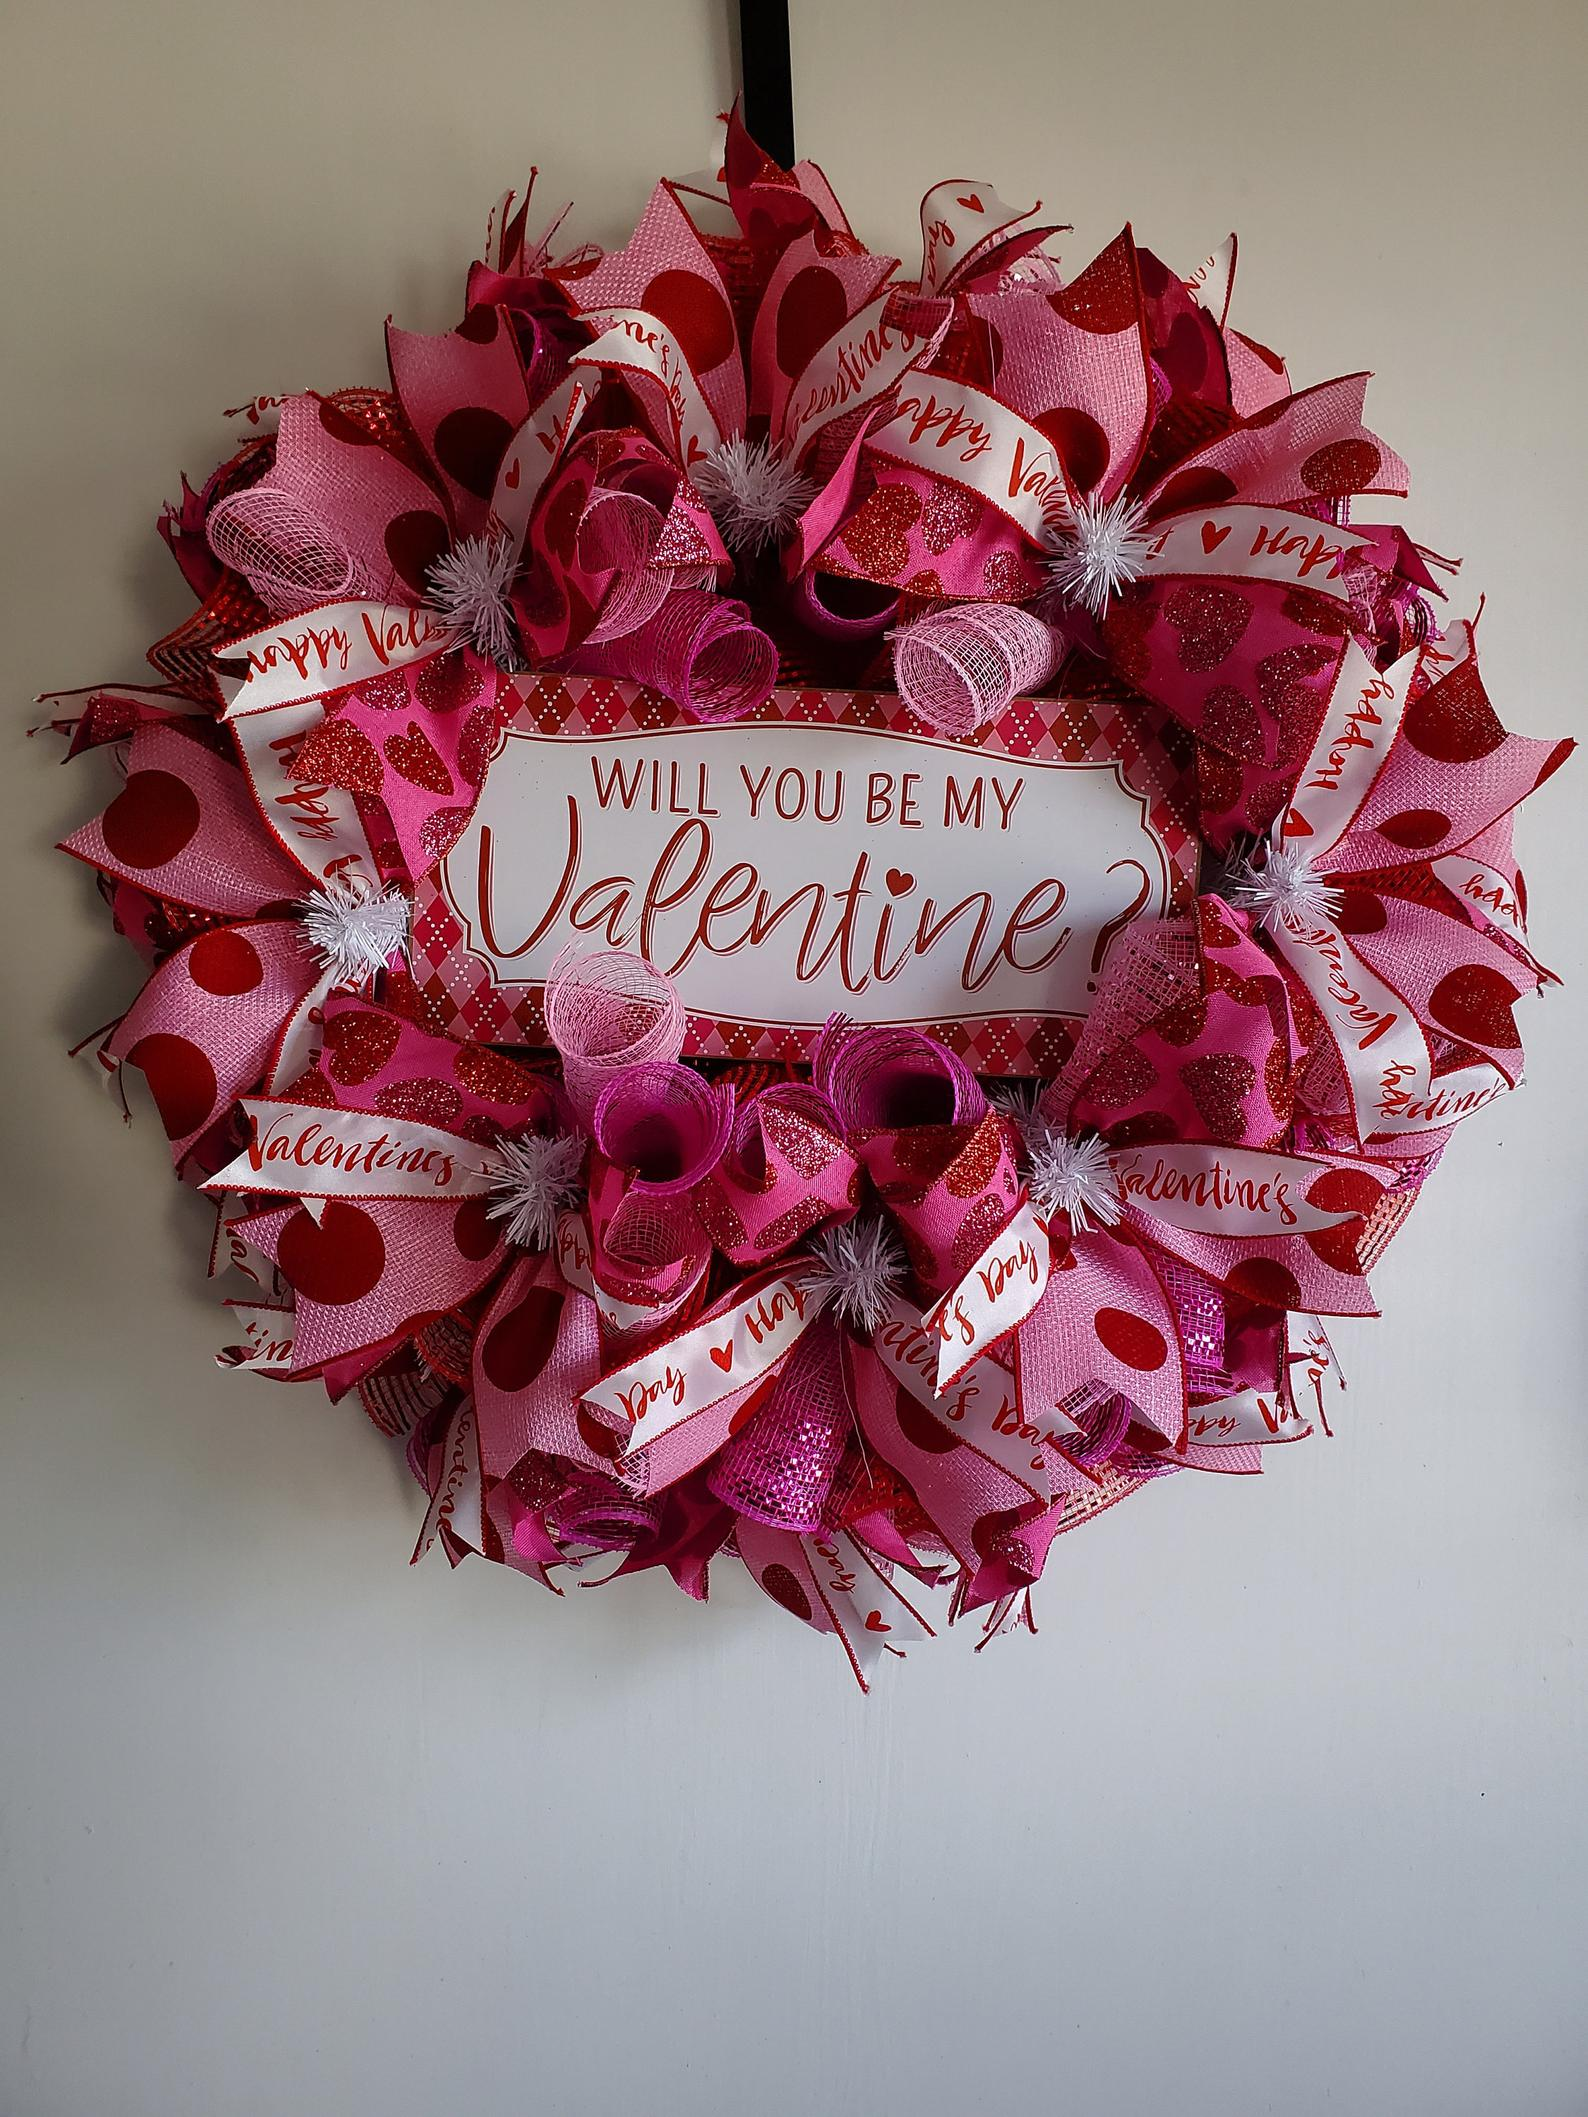 Pink decorative knitted Valentine's wreaths for the front door